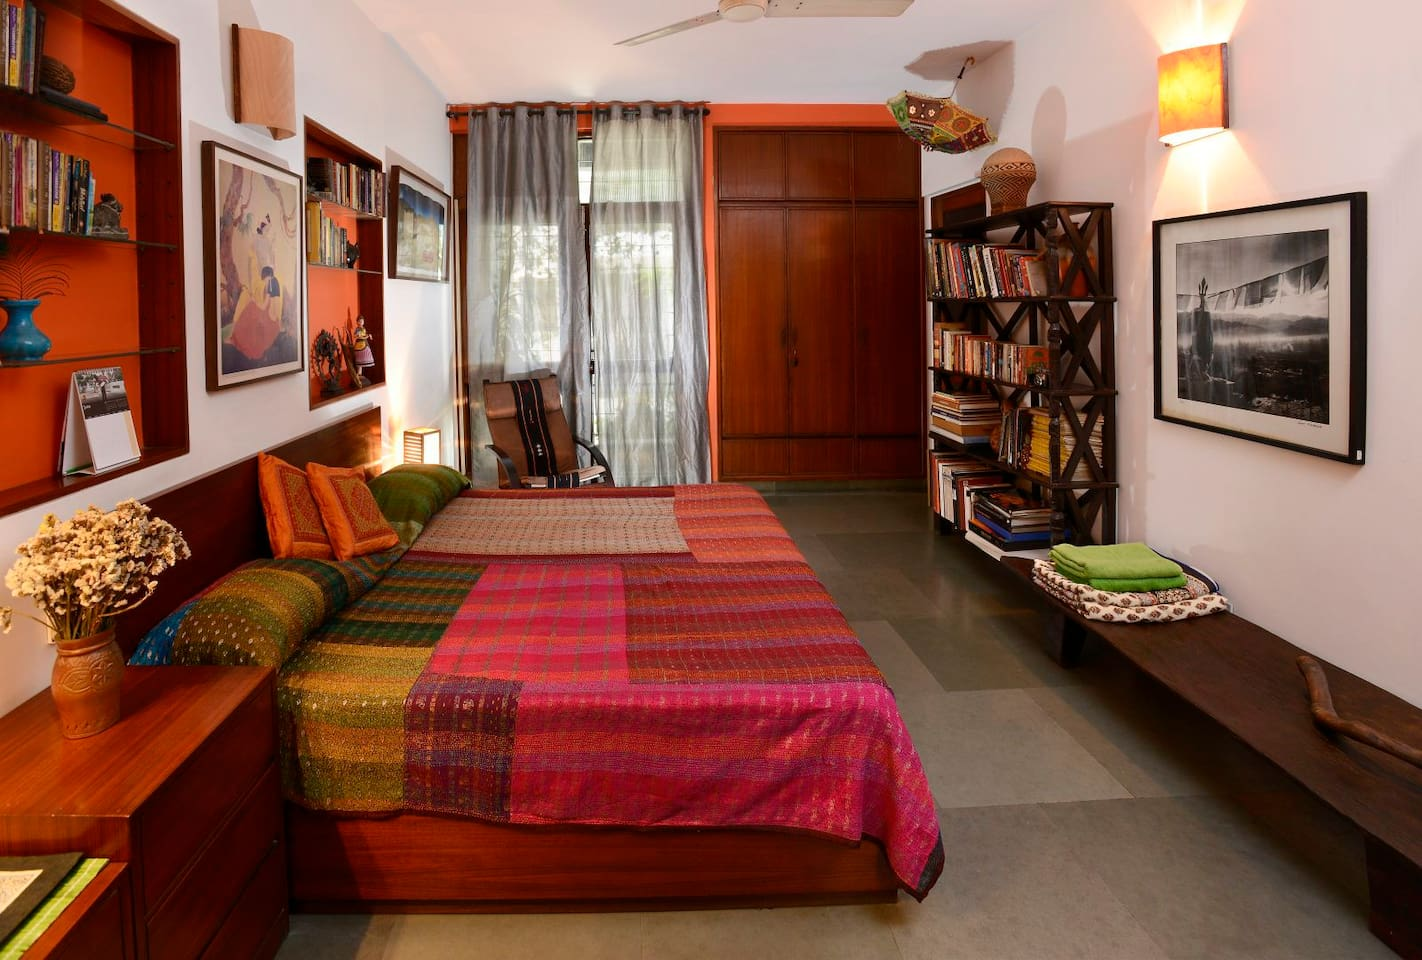 Your spacious bedroom with vivid, handcrafted furnishings and artefacts.